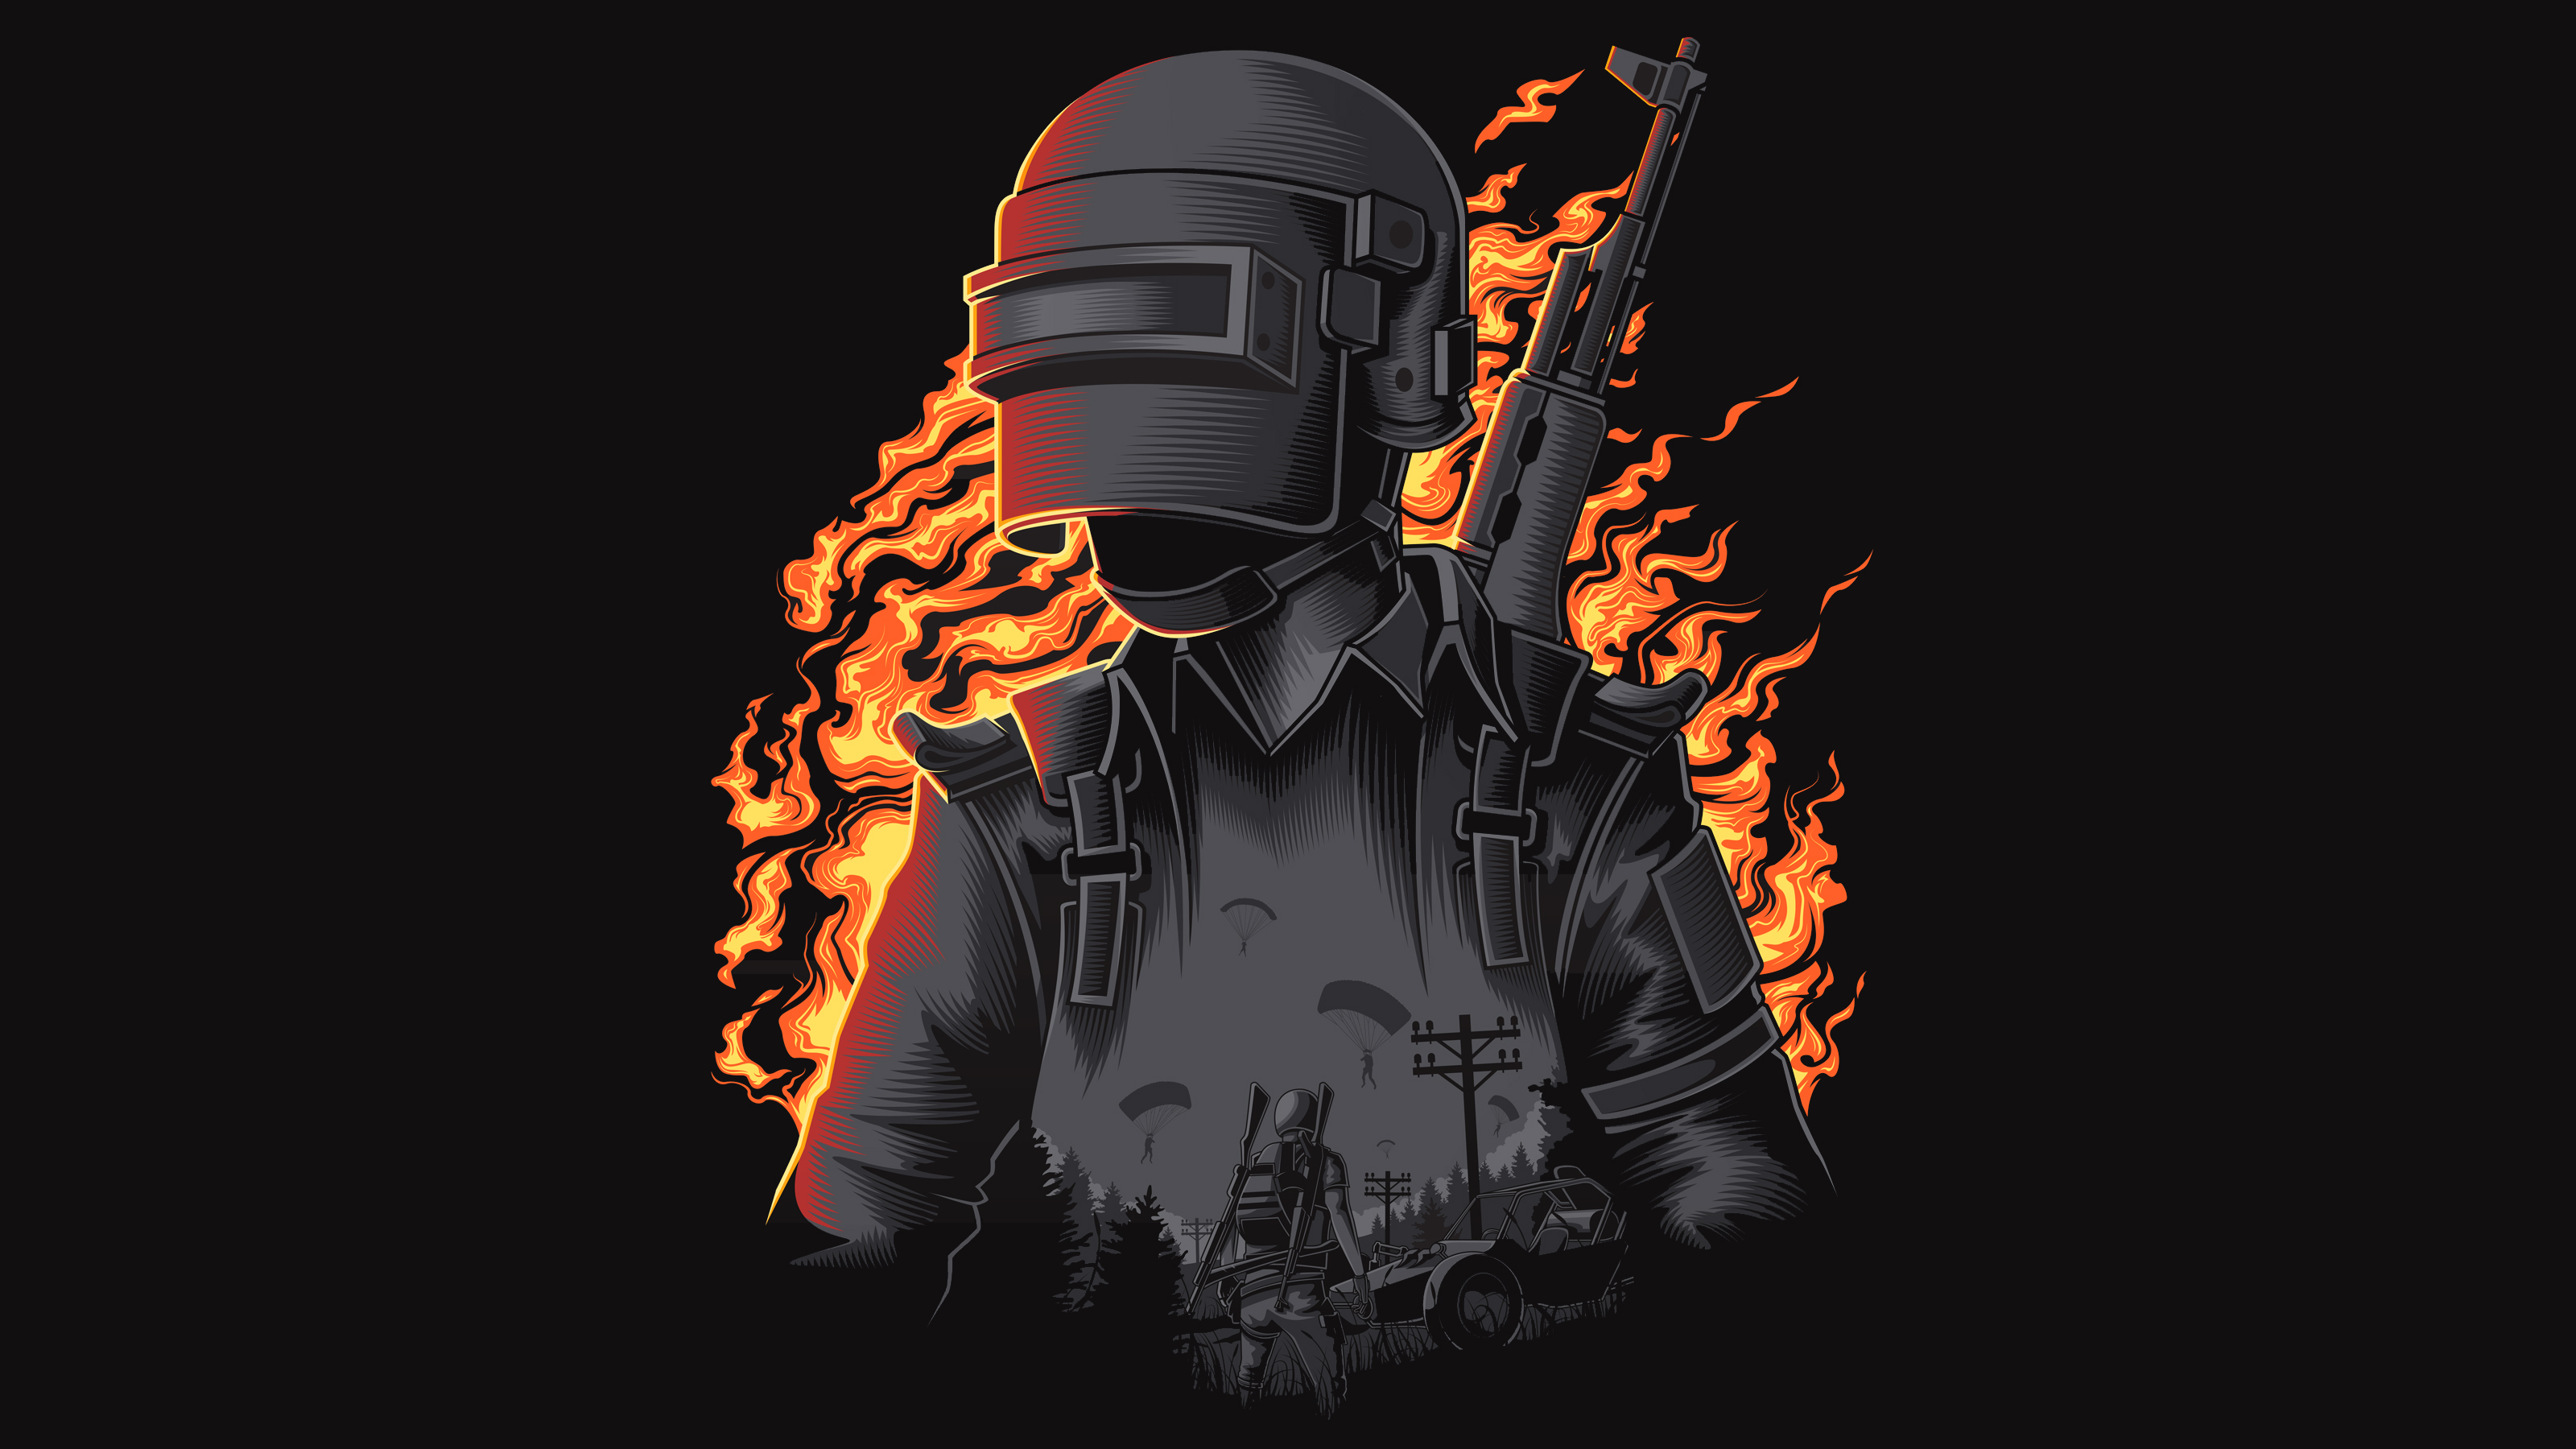 Pubg Mobile Wallpapers For Phone: PUBG Dark Illustration Wallpapers